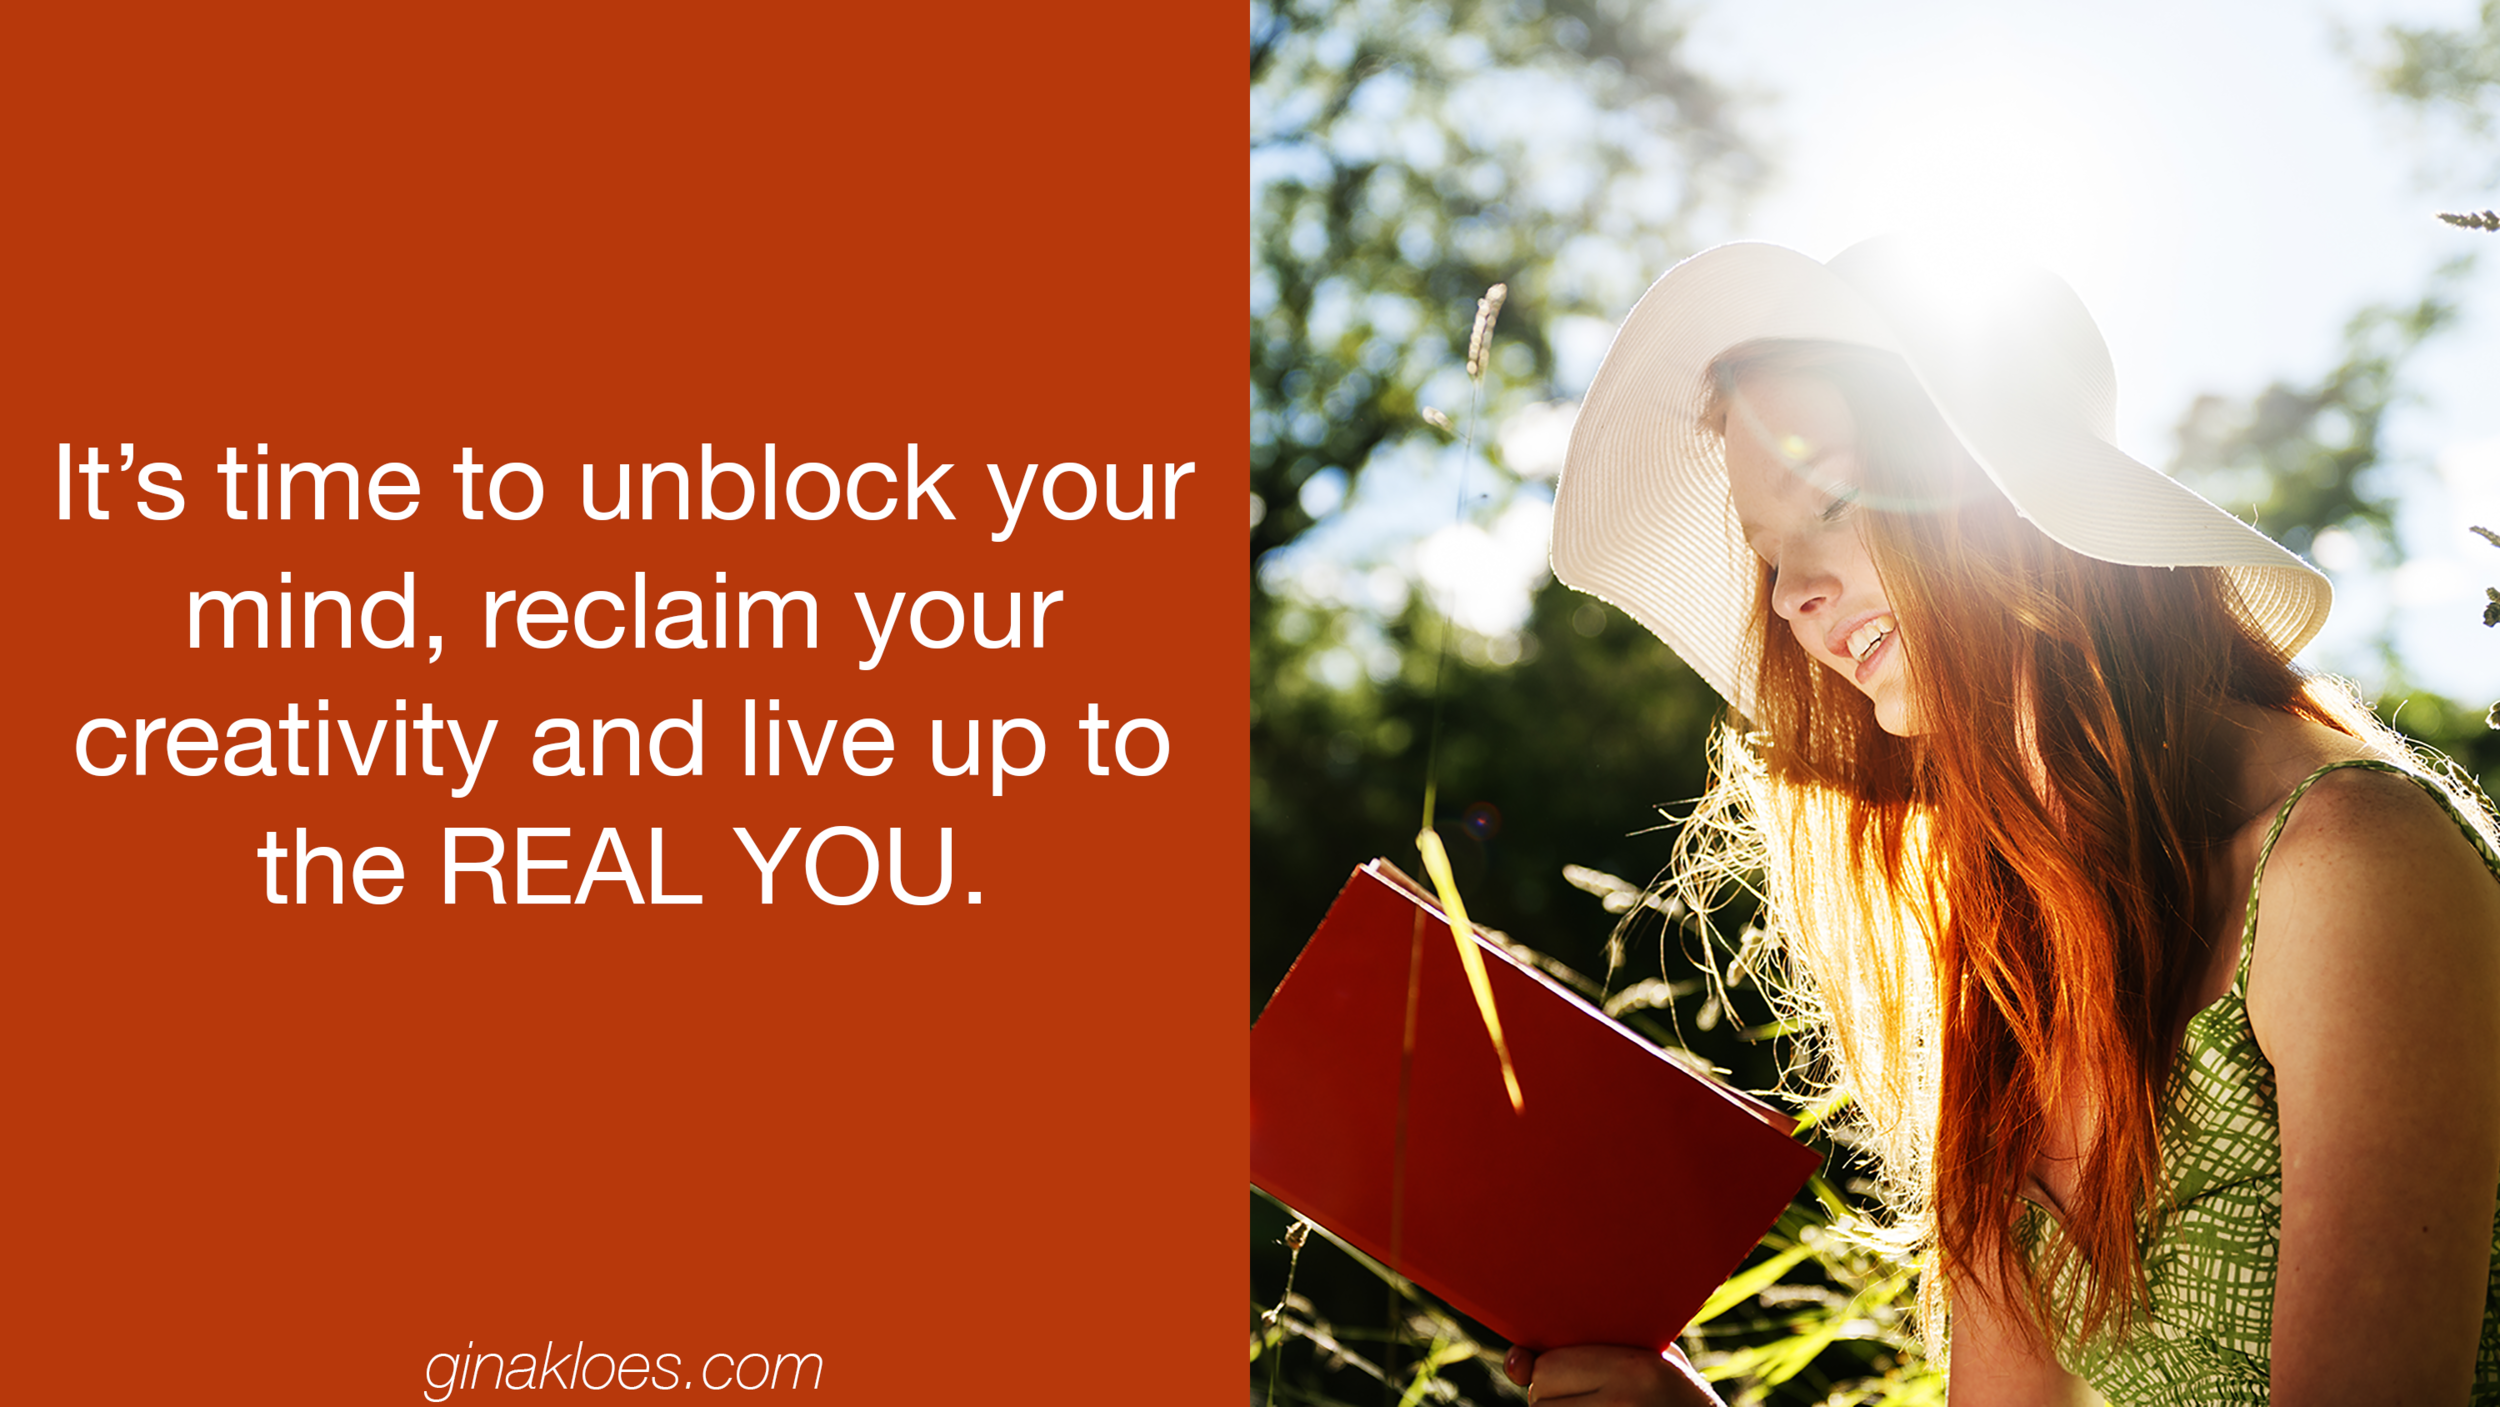 Unblock your mind, reclaim your creativity, and live up to the real you.png